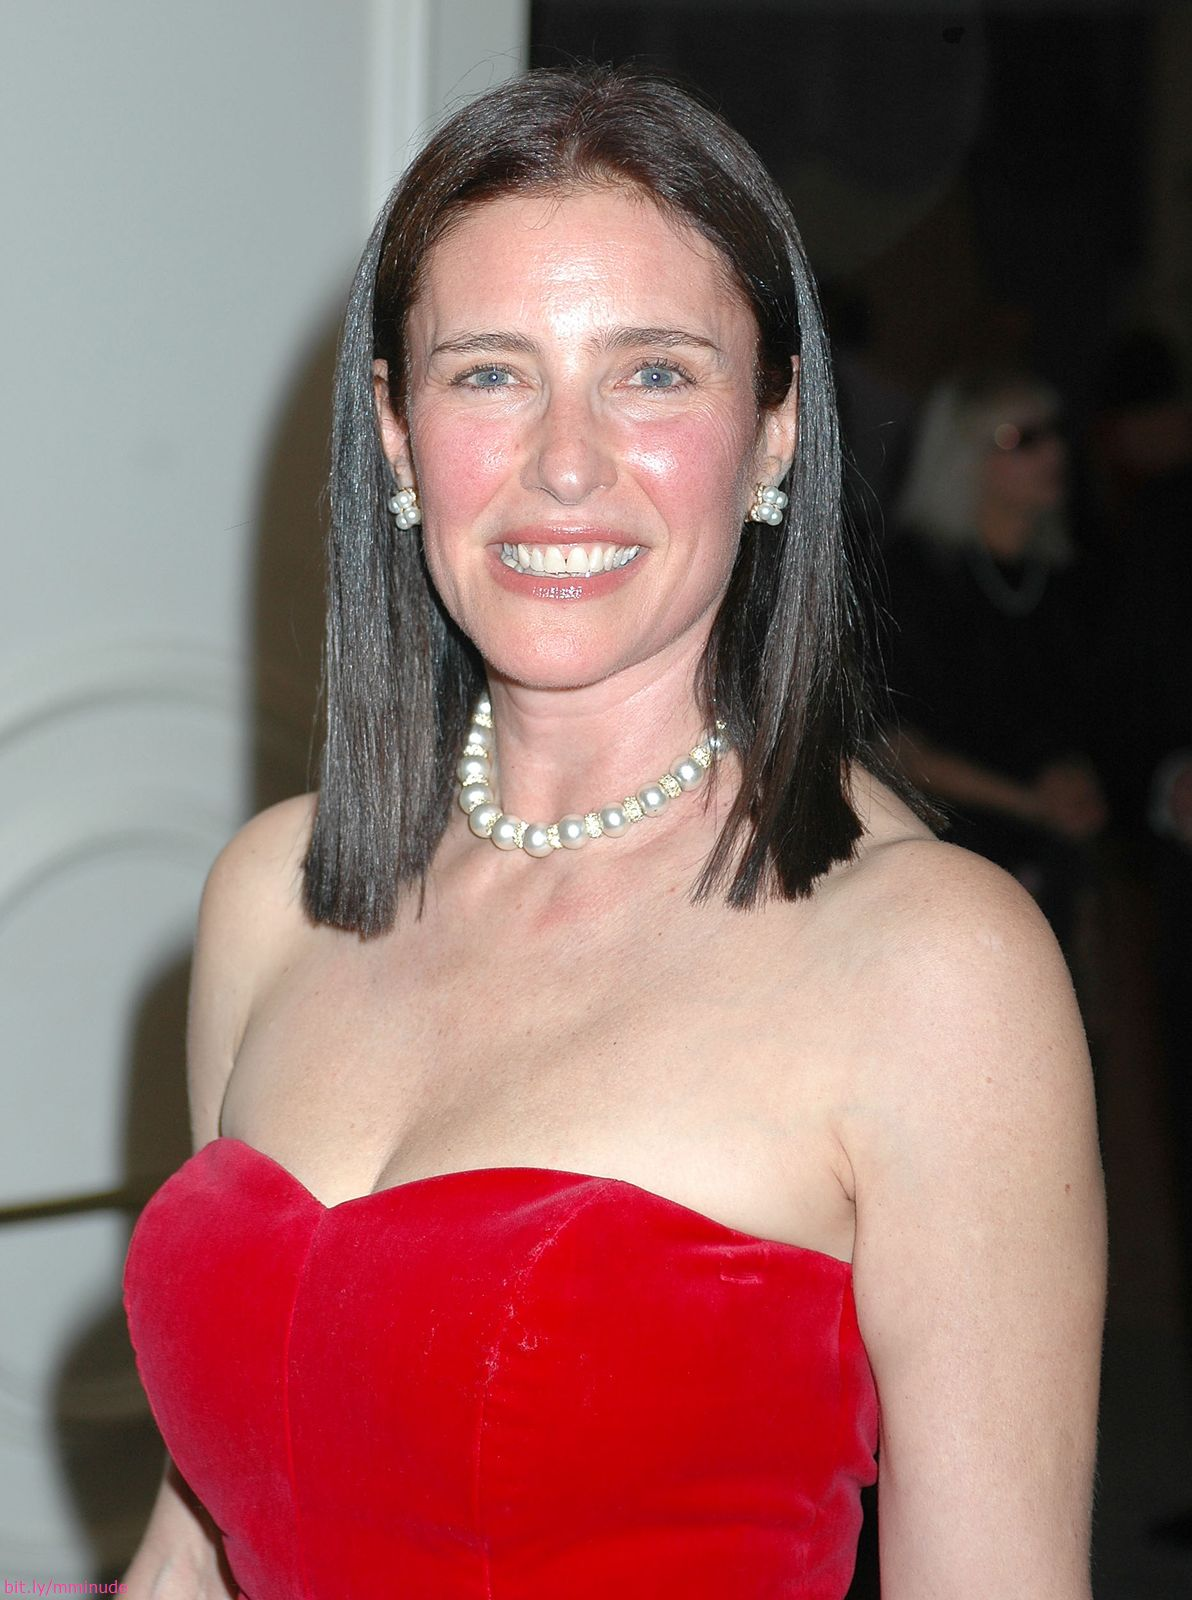 Mimi Rogers Nude - Yes, Her Big Boobs Are Awesome! (57 PICS)